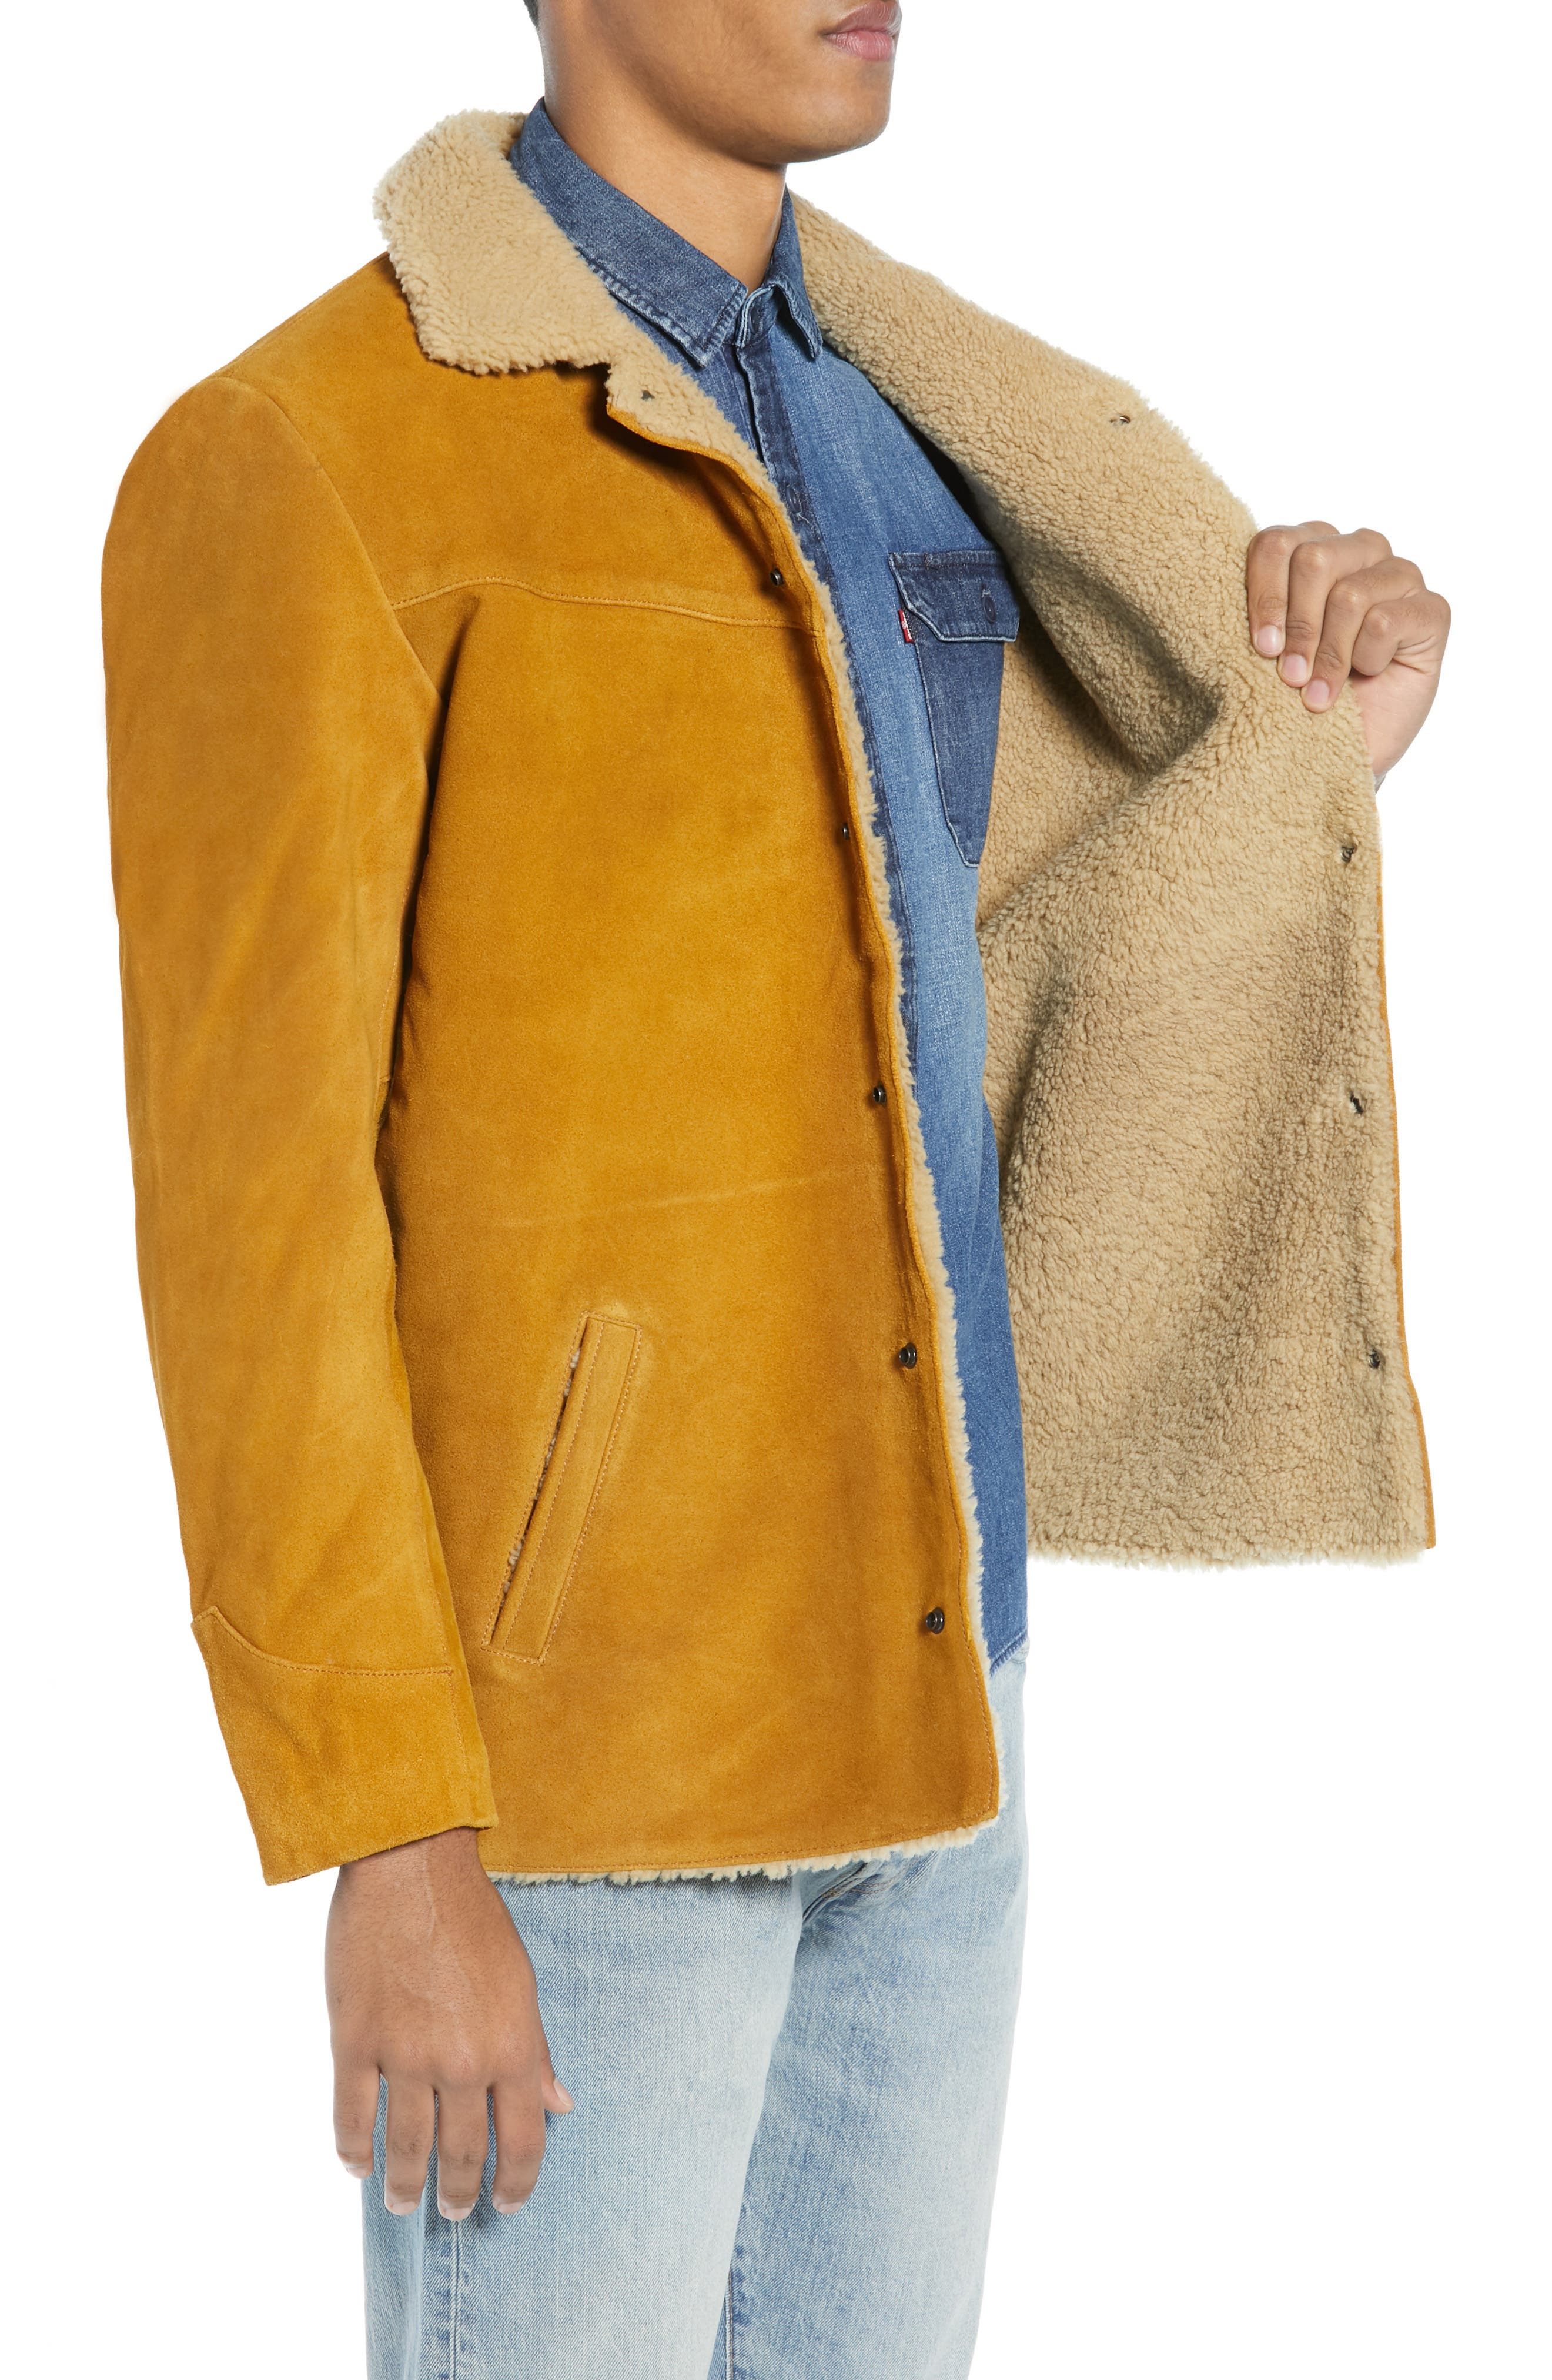 Levi's<sup>®</sup> Fleece Lined Suede Jacket,                             Alternate thumbnail 3, color,                             250